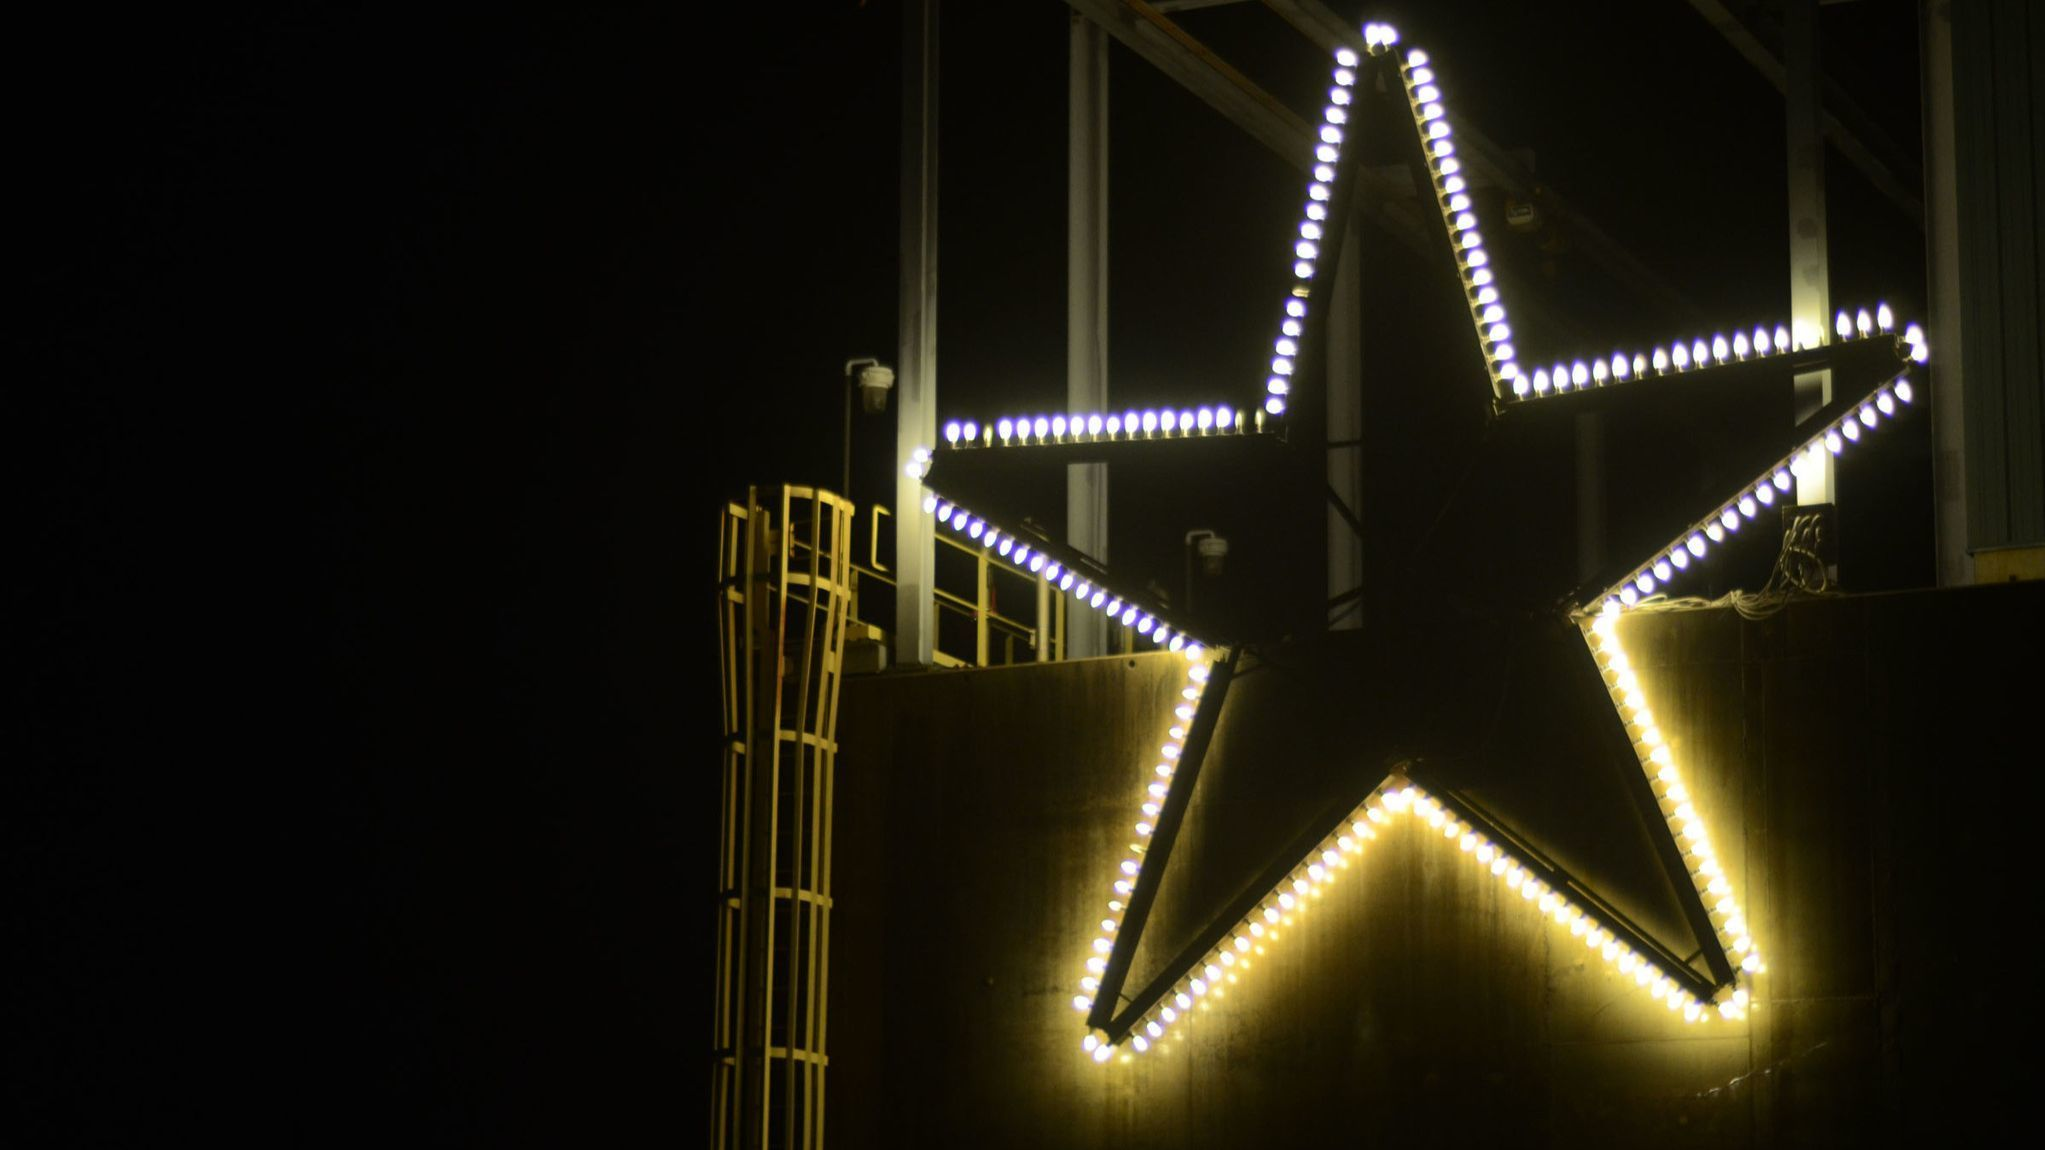 Sparrows Point's 'Star of Bethlehem' gets a new home this holiday season | Baltimore Sun